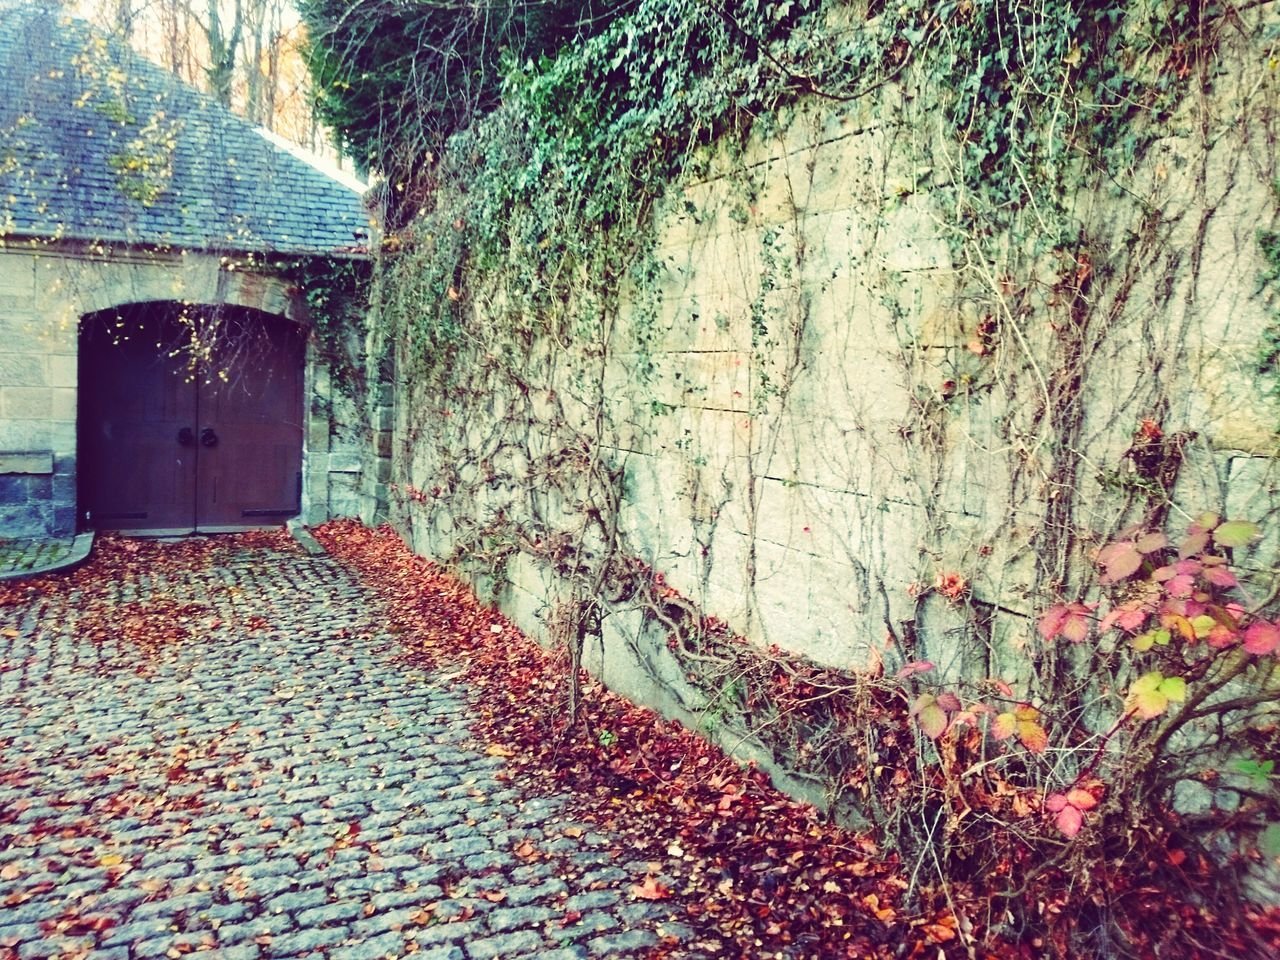 No People Outdoors Built Structure Beauty In Nature Nature Autumn Leaves Fallenleaves Fallenleave Barn